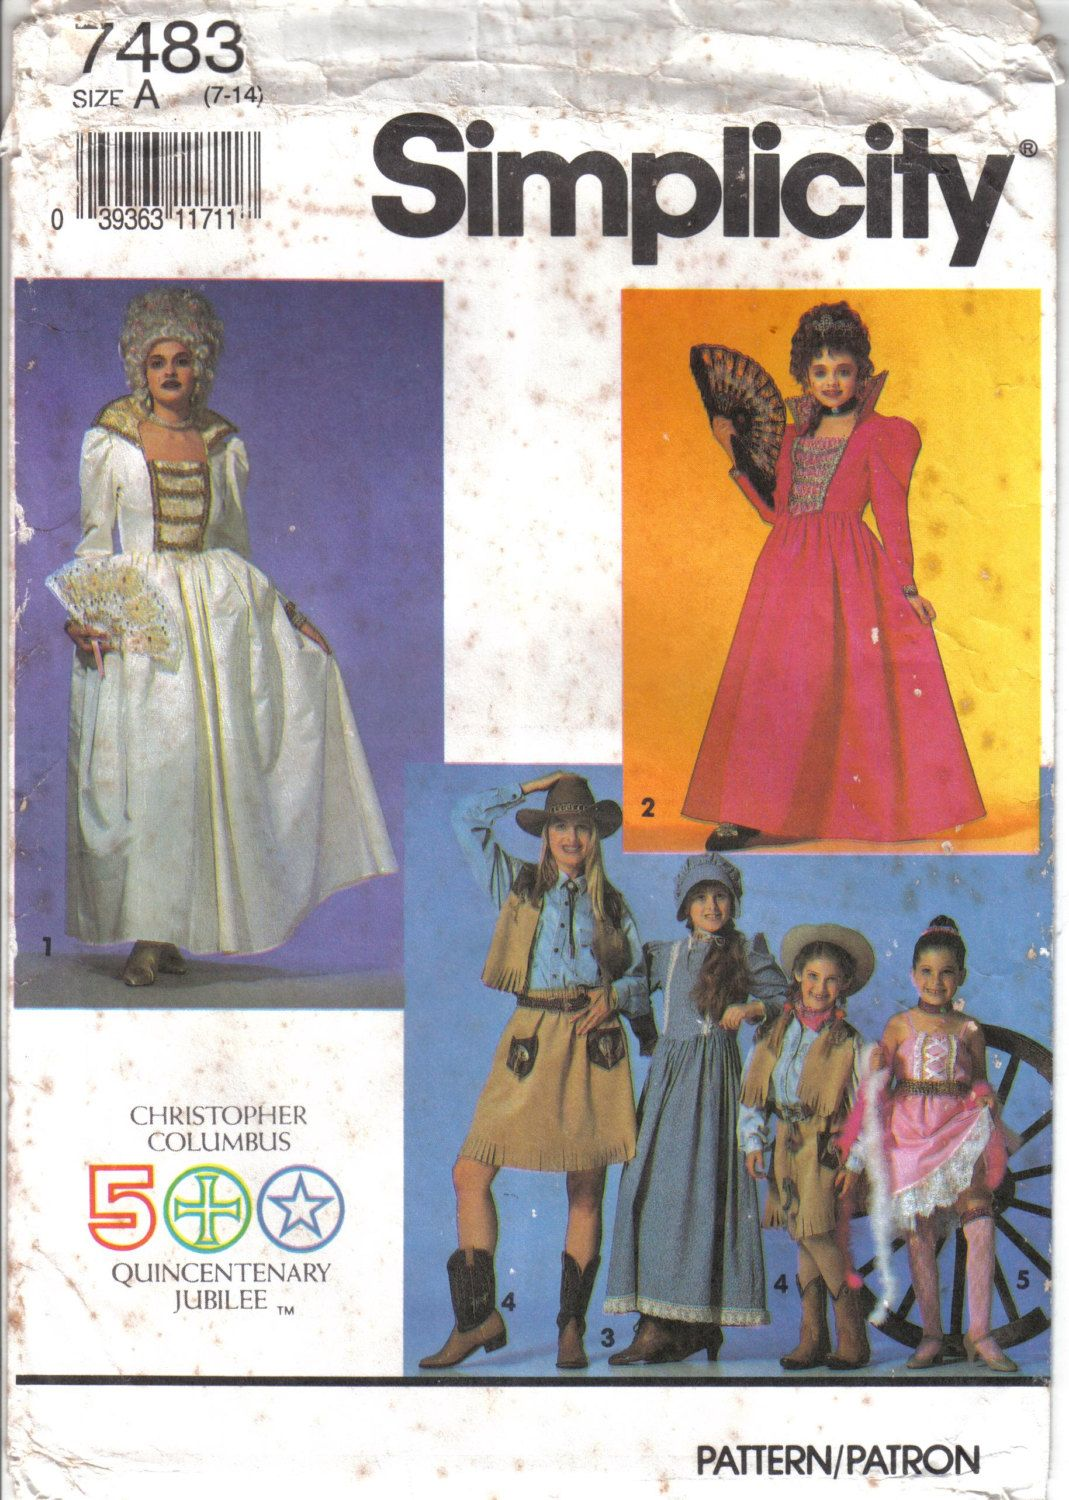 Vintage Simplicity Girl's Historical Costumes Pattern 7483 Size child's 7-14…